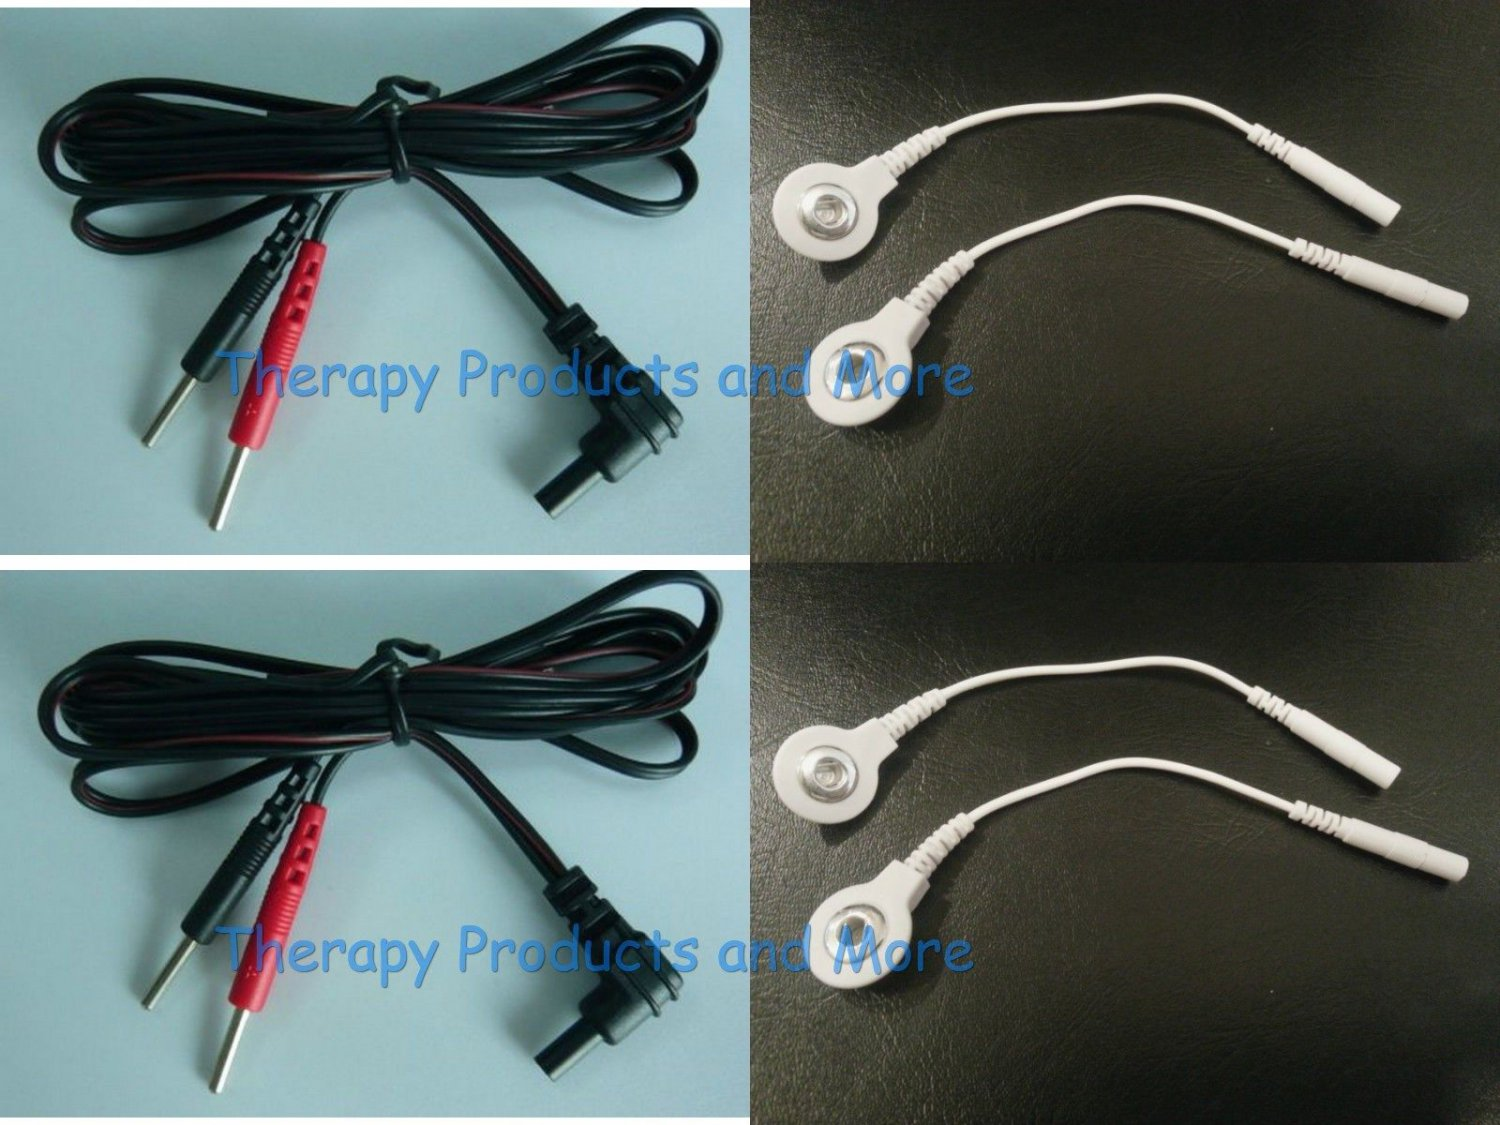 Replacement Electrode Cables-Use Snap or Pin Pads Compatible w/iRelieve ET-1313